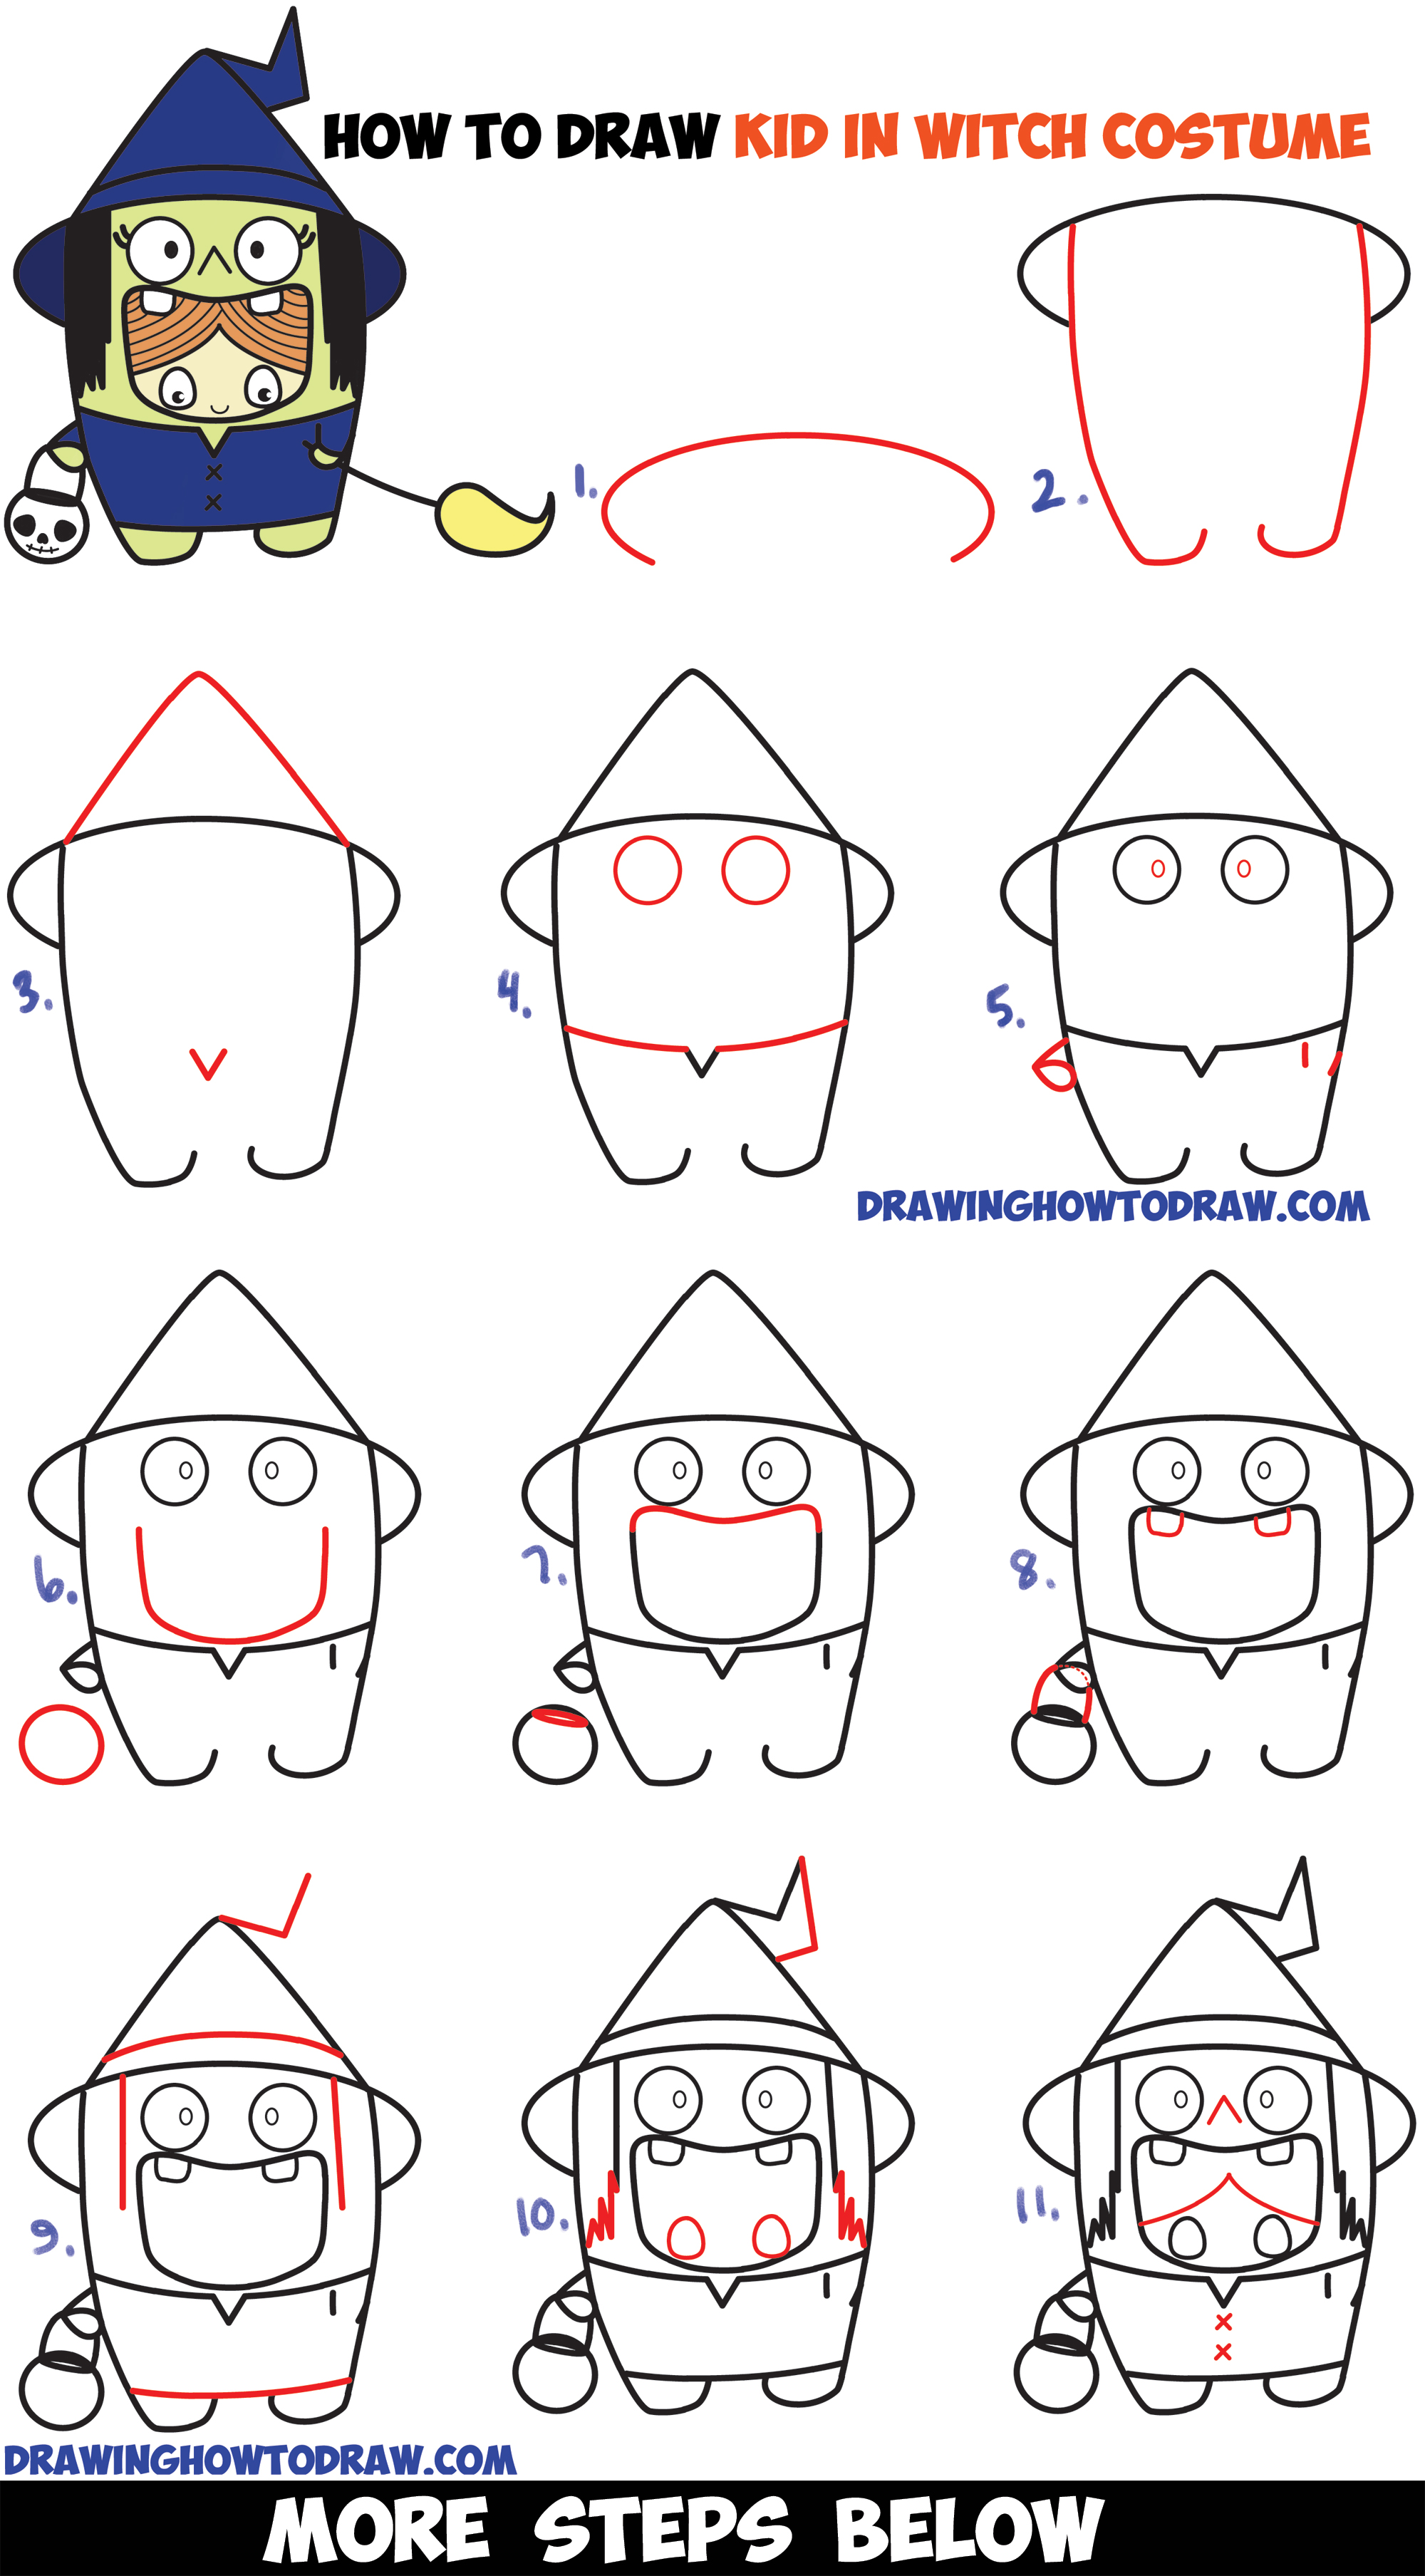 er diagram tutorial for beginners hampton bay ceiling fan speed switch how to draw a kid in halloween witch costume cute